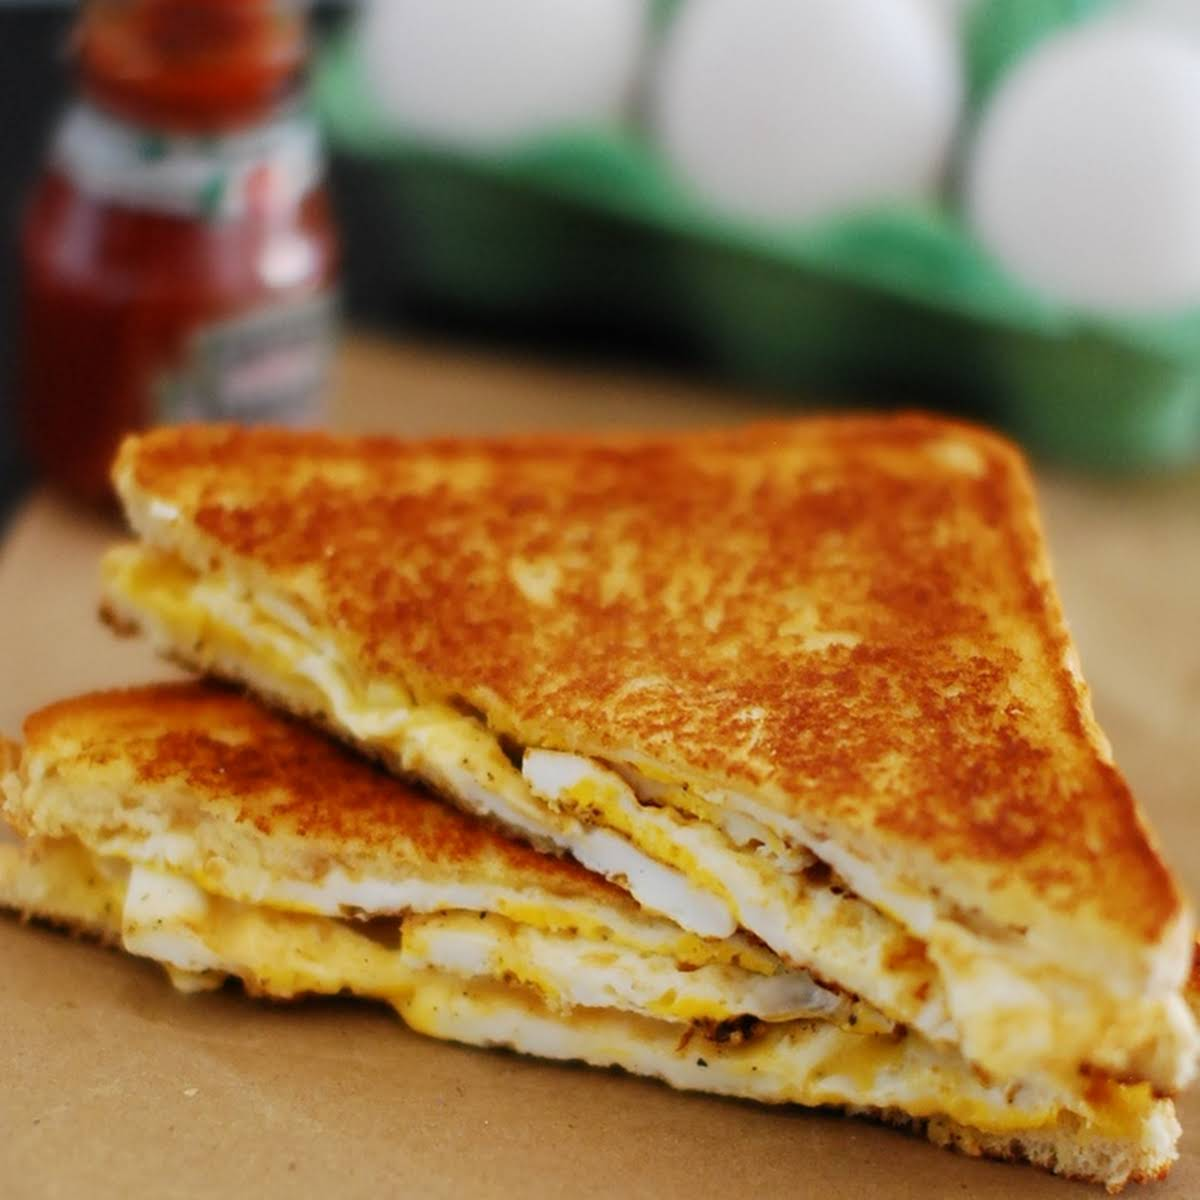 Grilled Egg and Cheese Sandwich